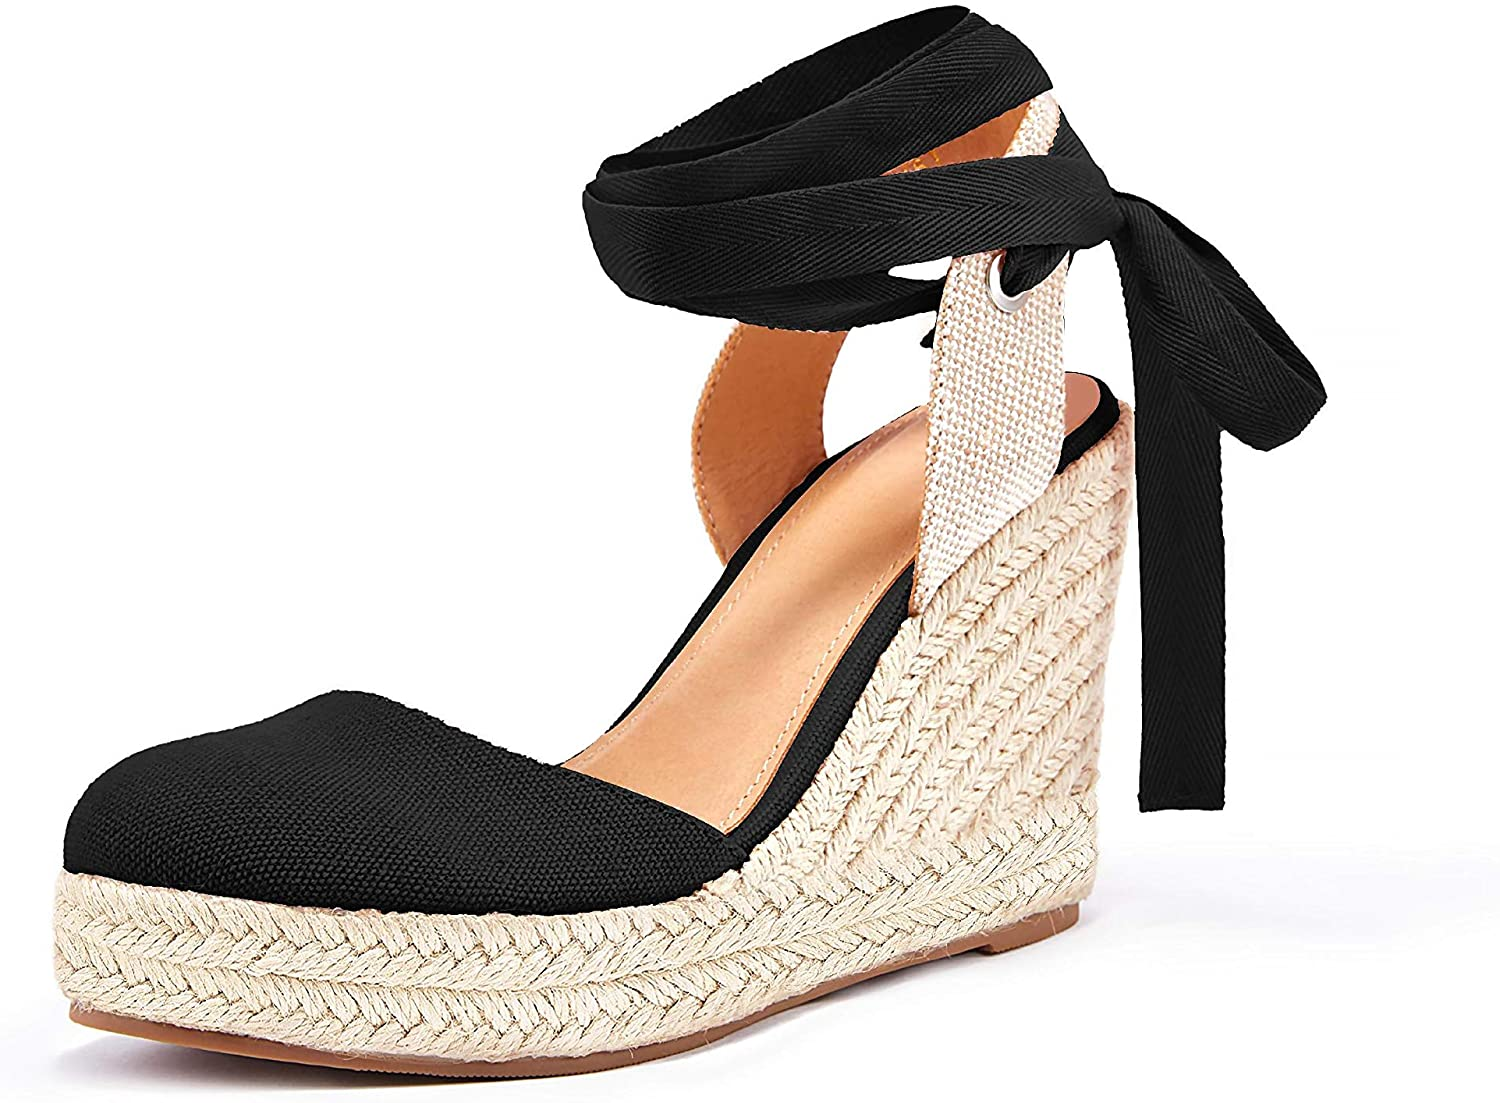 Ranking TOP20 Womens Espadrille Wedge Sandals Closed Platform Up Toe Ankl Max 46% OFF Lace